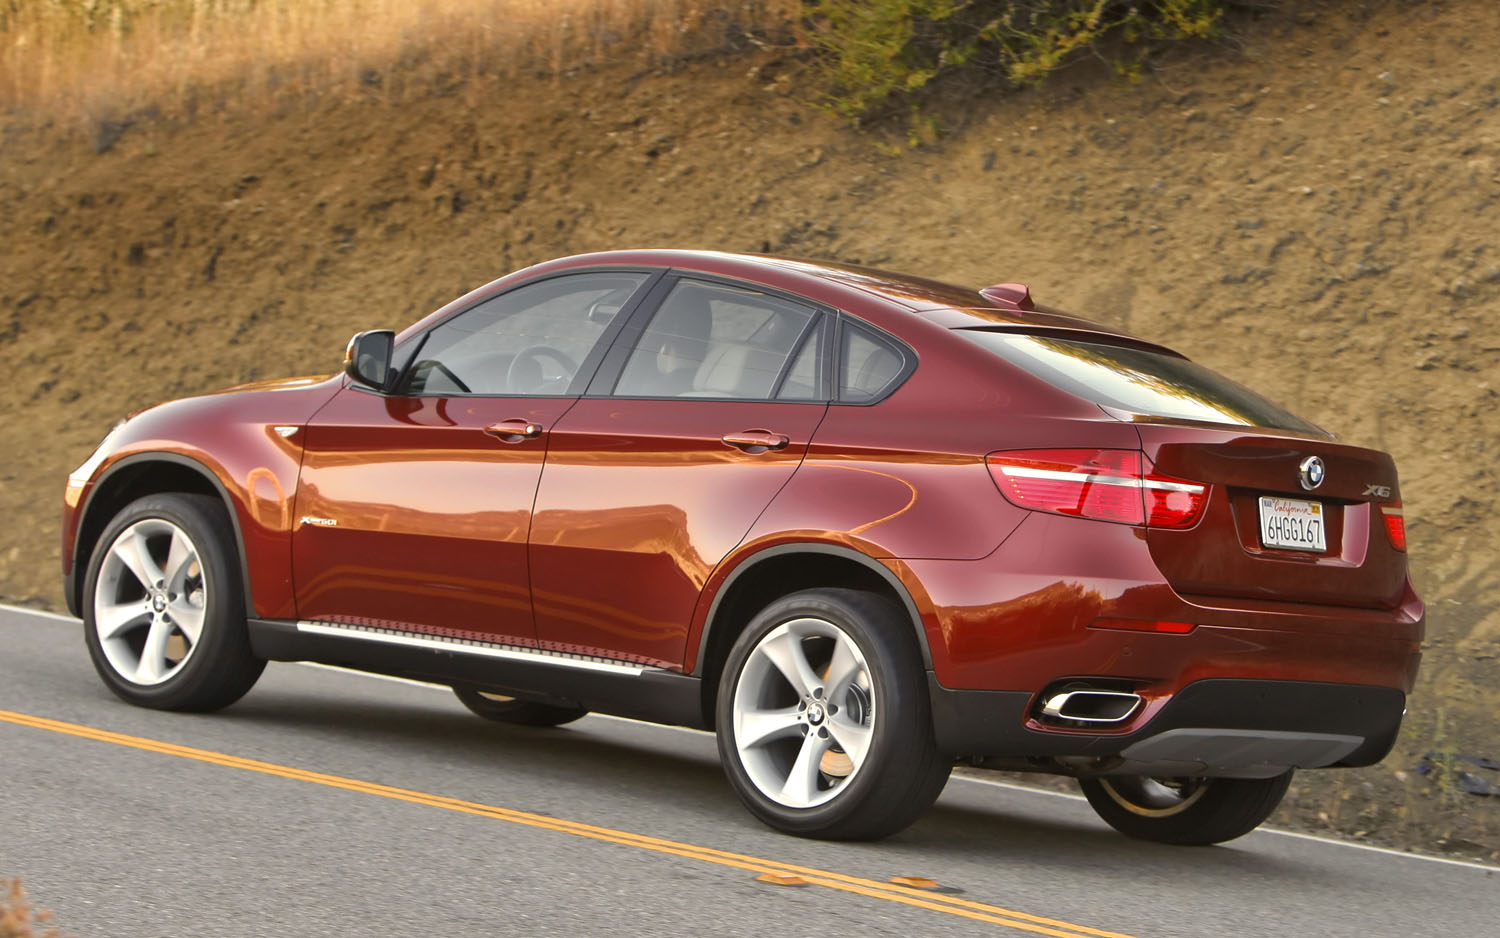 BMW X6 xDrive50i 2011 photo - 2